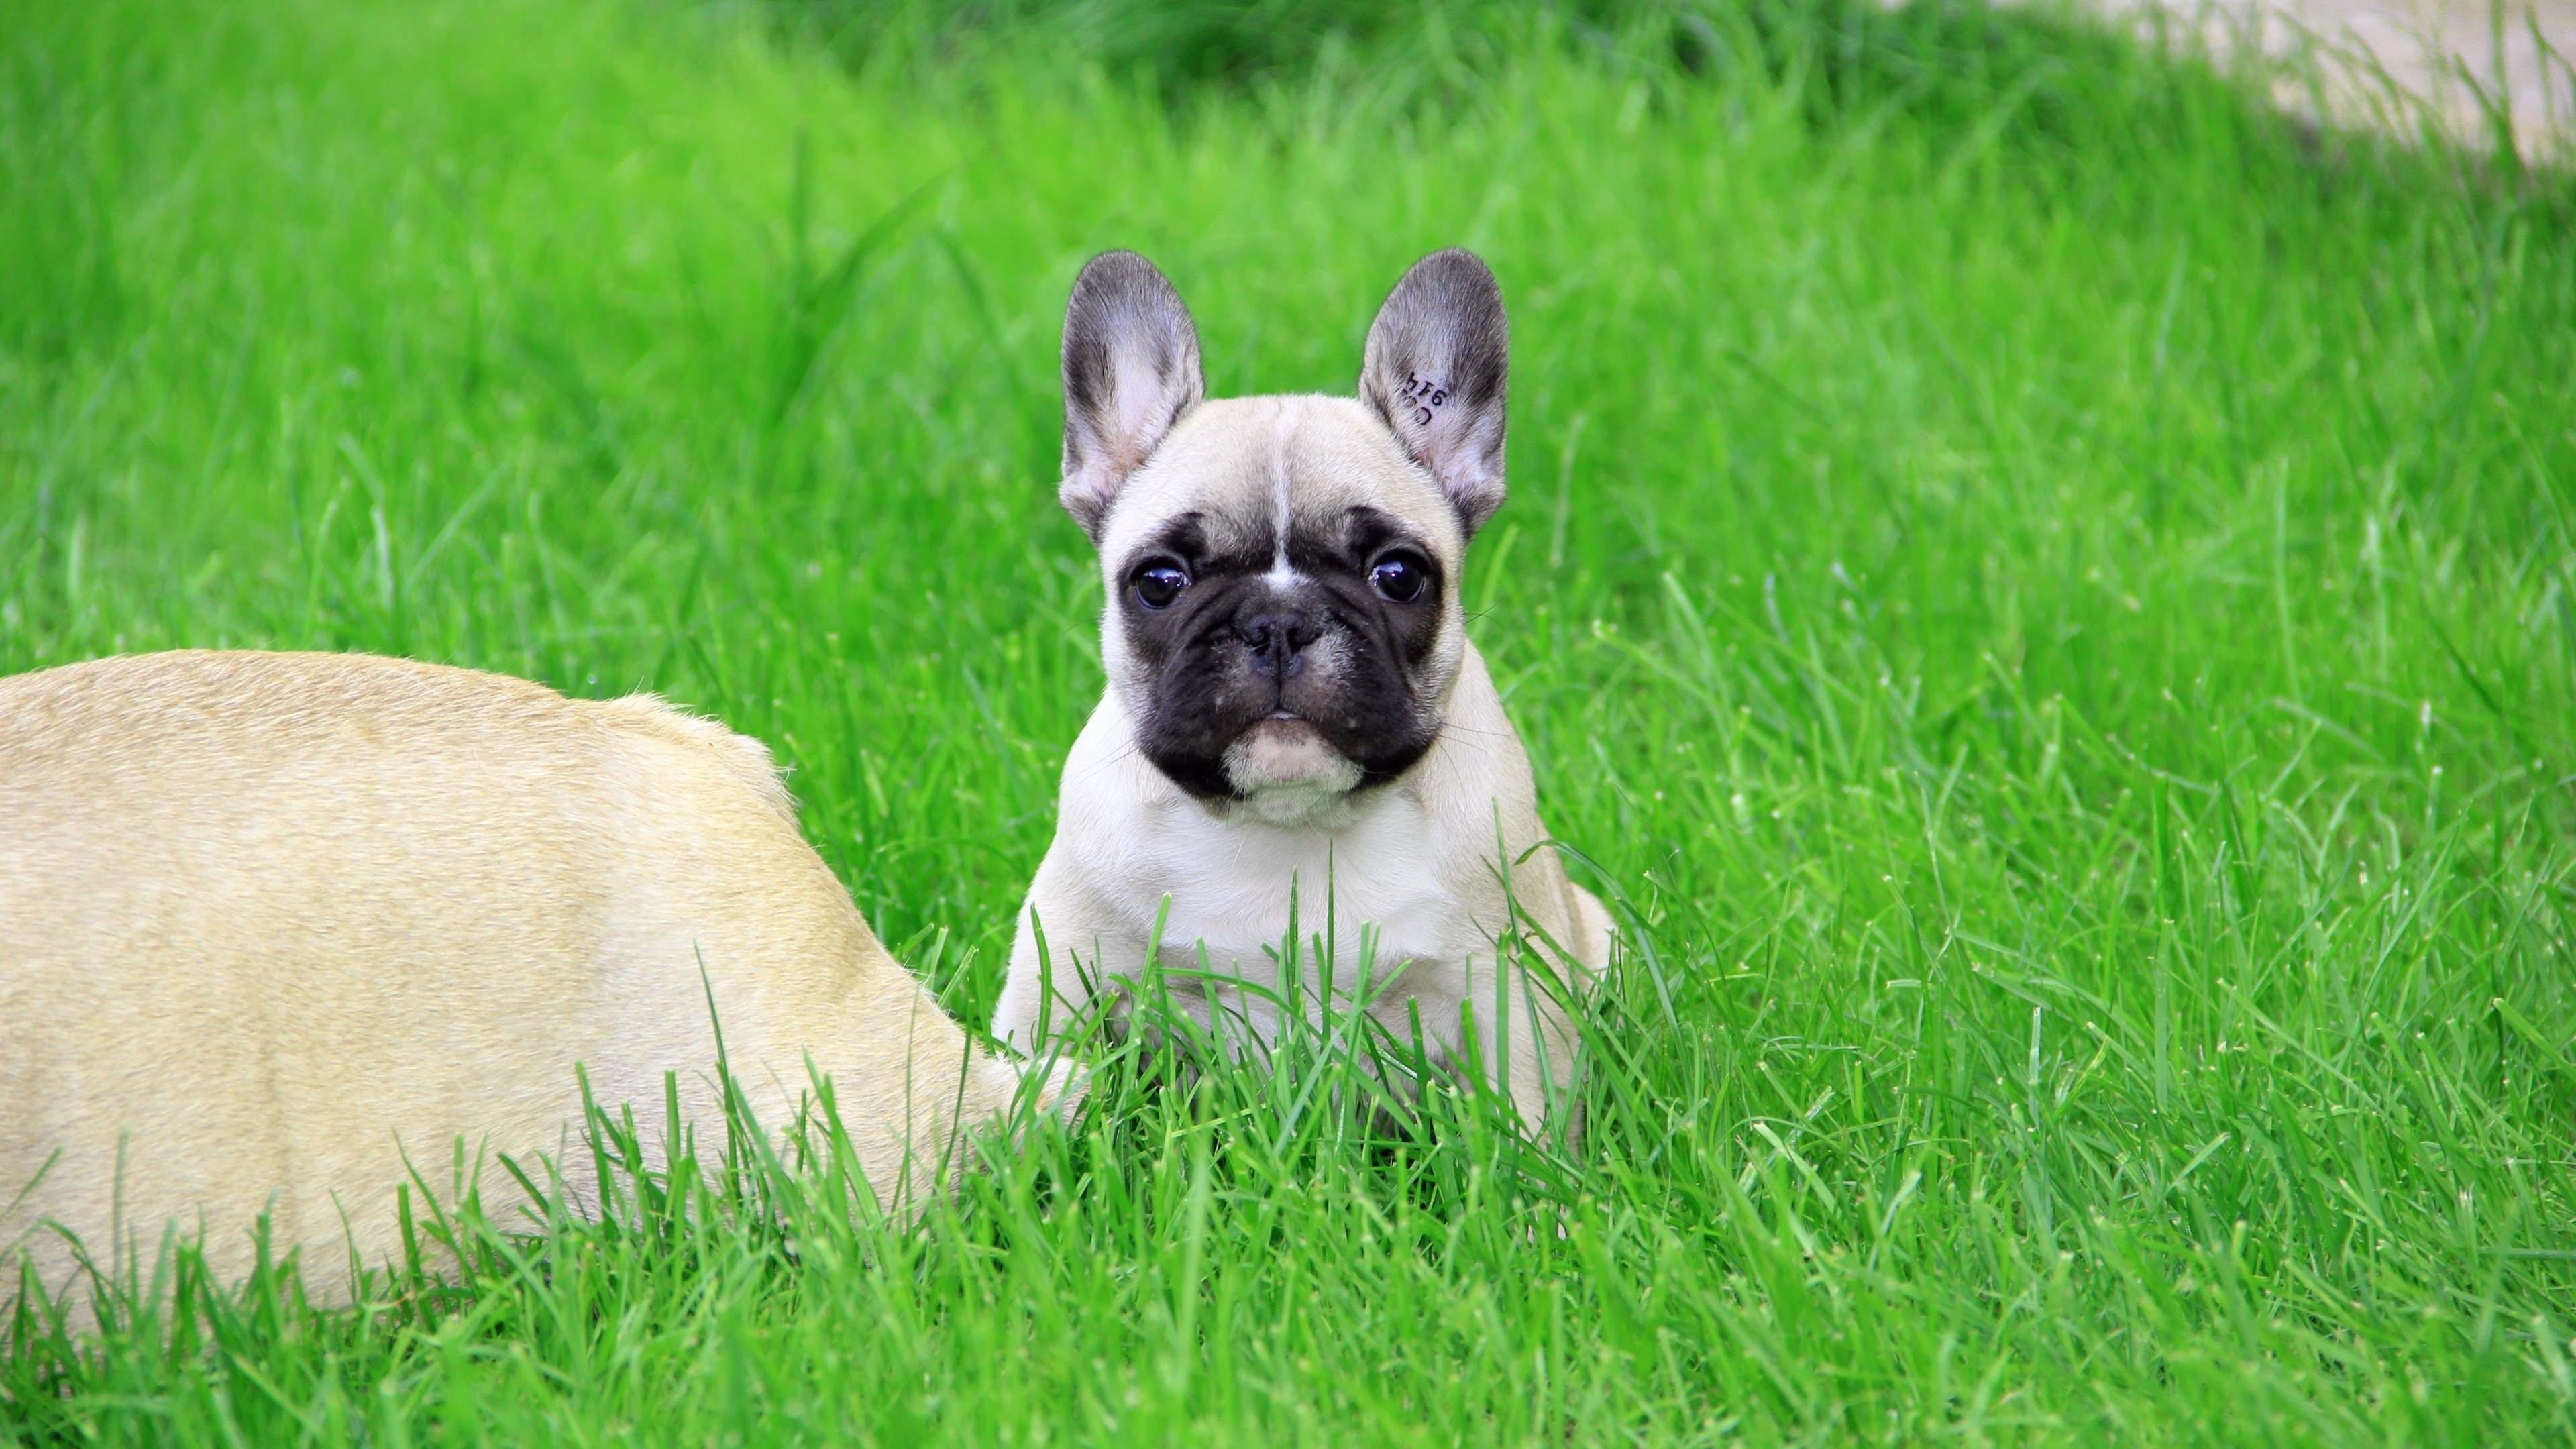 French Bulldog Puppy Wallpaper for Desktop 4K 3840x2160